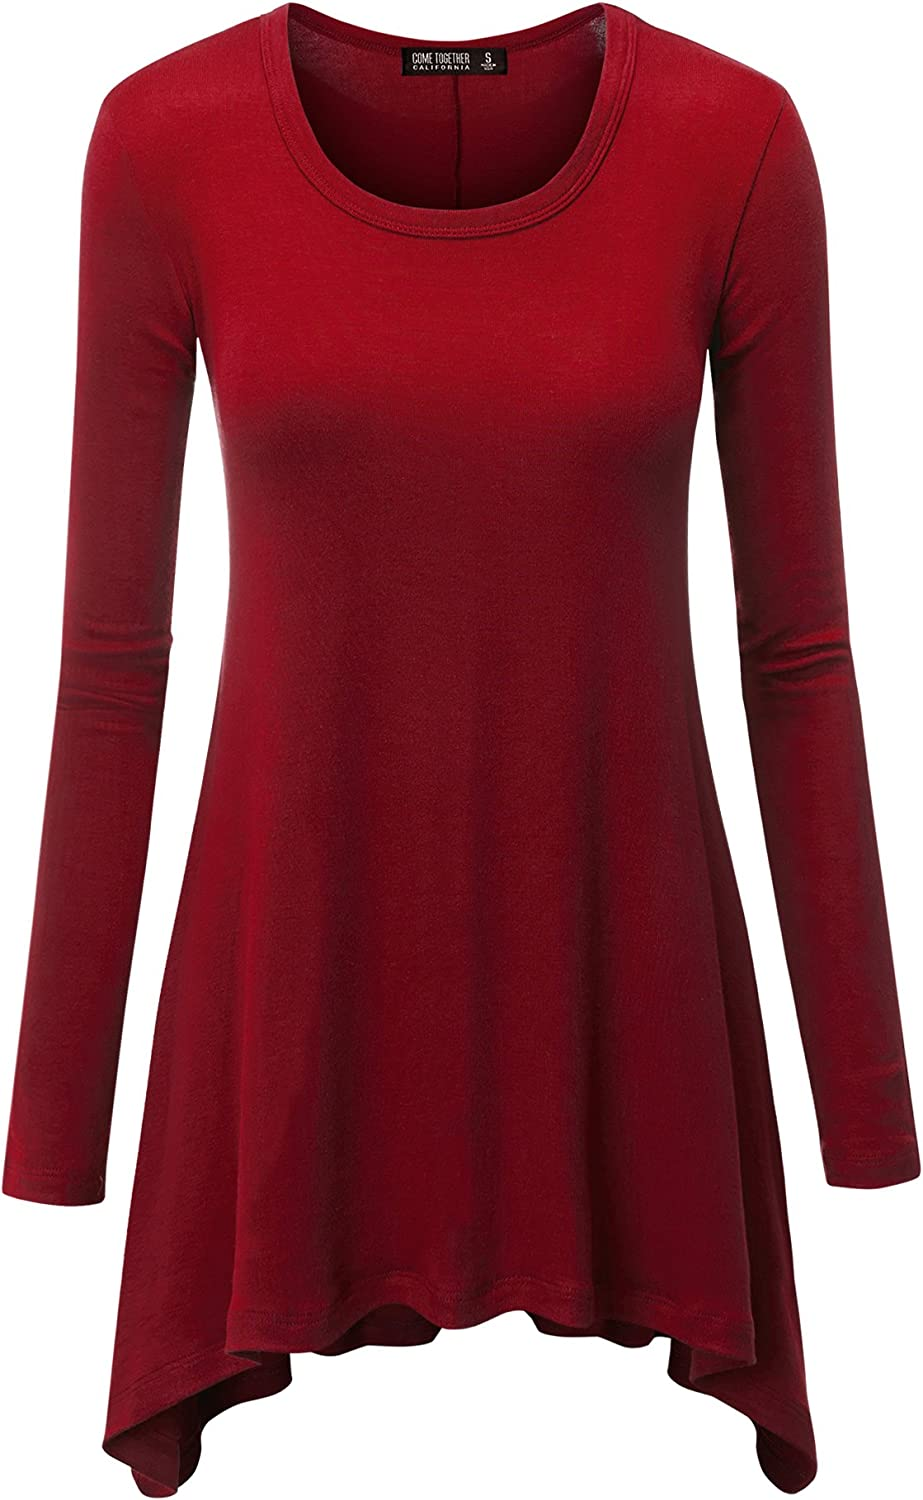 CTC Womens Round Neck Long Sleeve Rib Trapeze Tunic Top - Made in USA